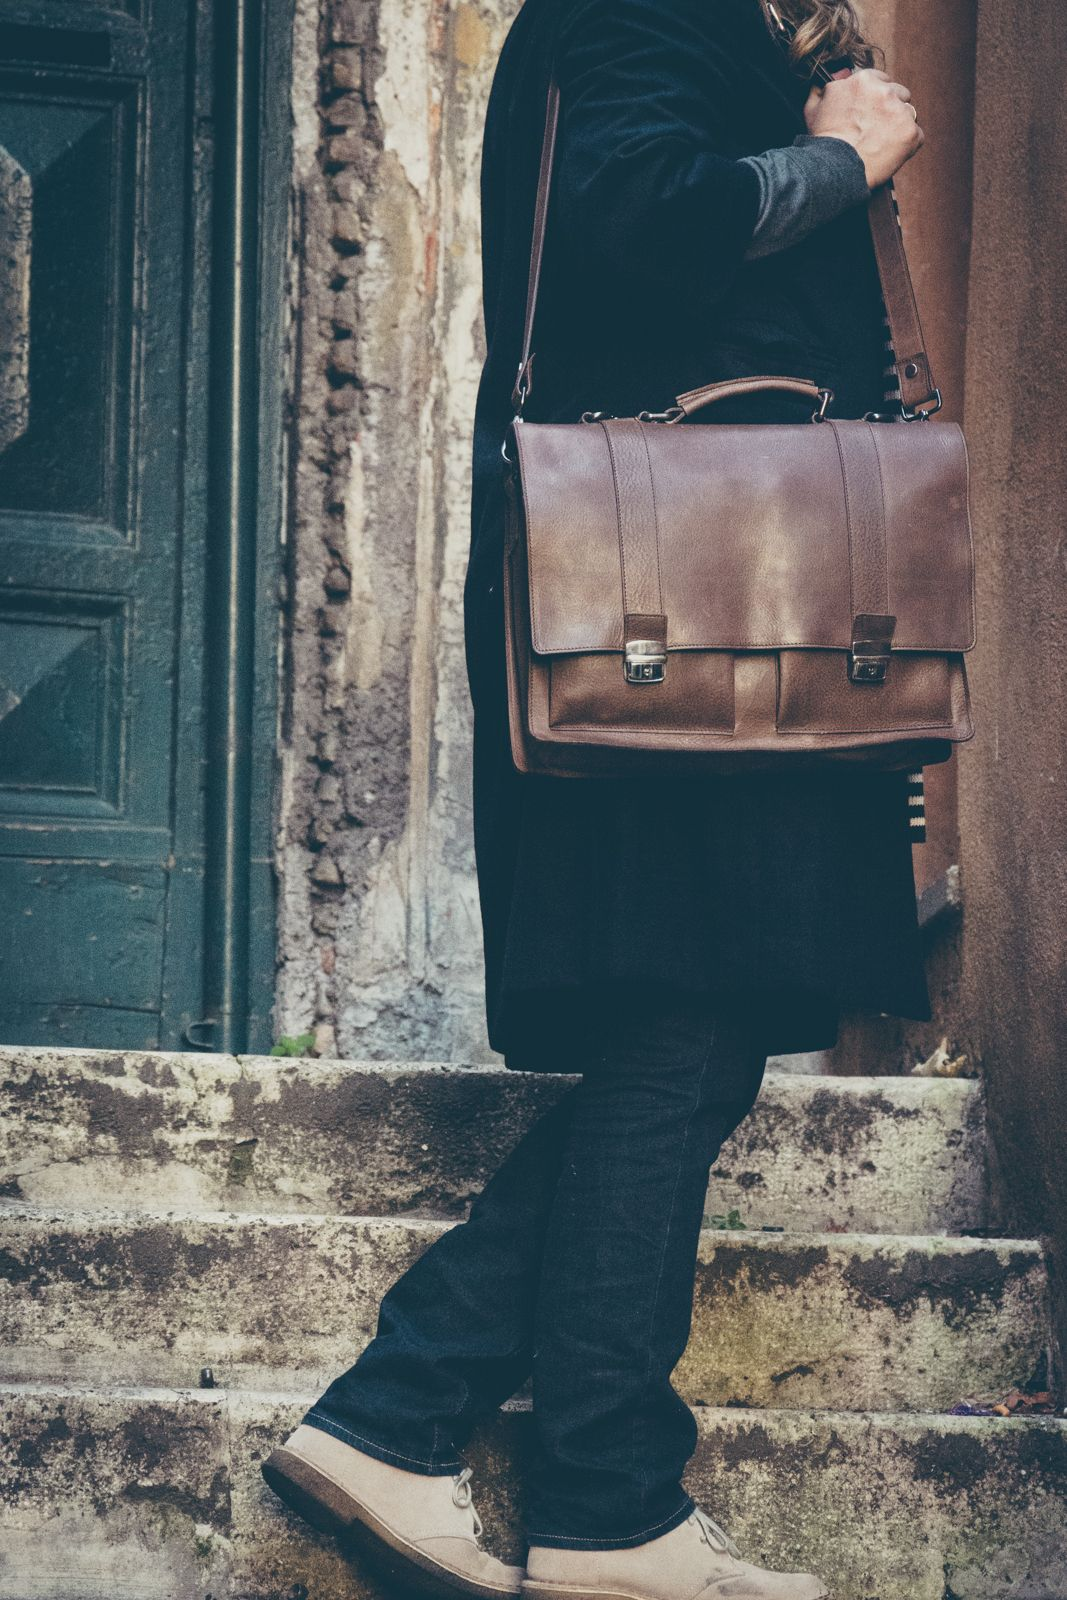 #leather #bags #firstquality #vegetabletannedleather #cotton #galvanizedbrass #burnishedsilver #leatherbag